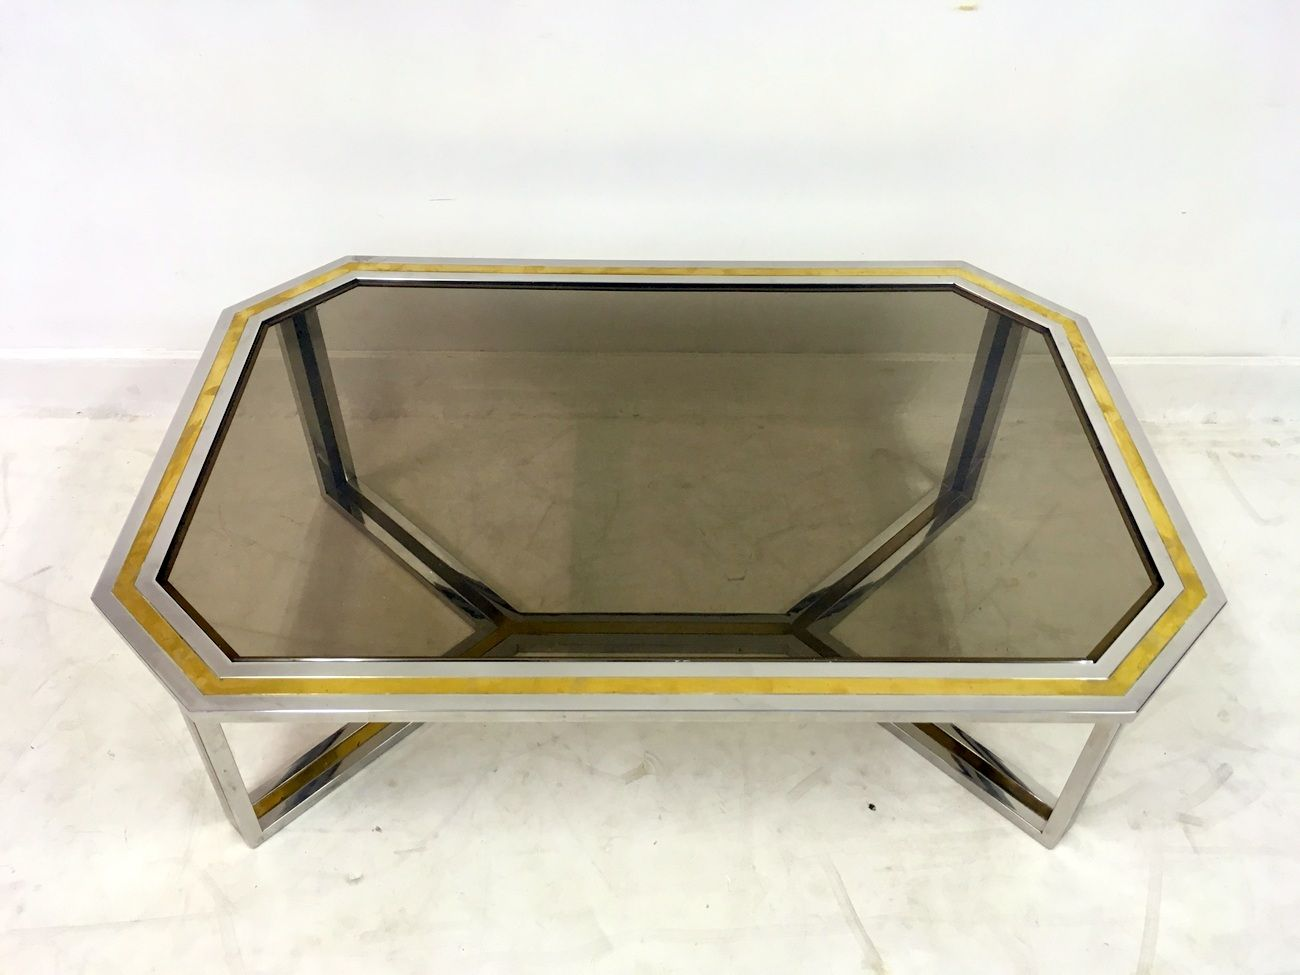 Chrome and Brass Coffee Table by Romeo Rega 1970s for sale at Pamono